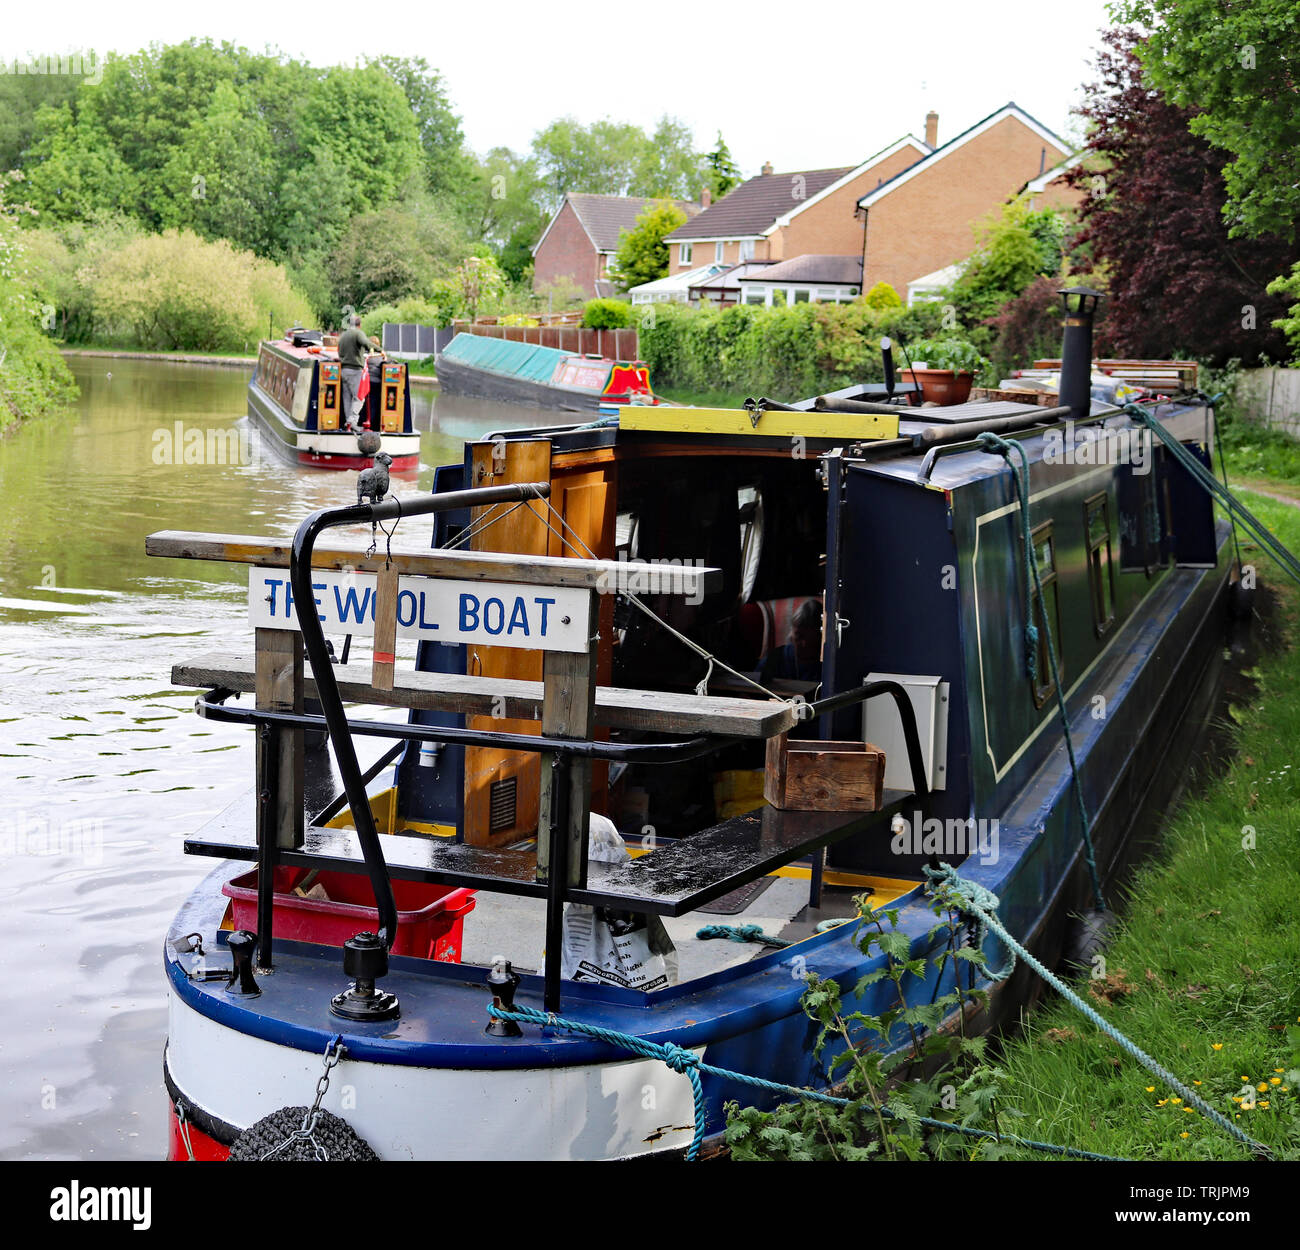 The Wool Boat, Coffee Boat and Towy in Middlewich.  Three canal working boats together on the Trent and Mersey canal, one an old one and two modern. - Stock Image